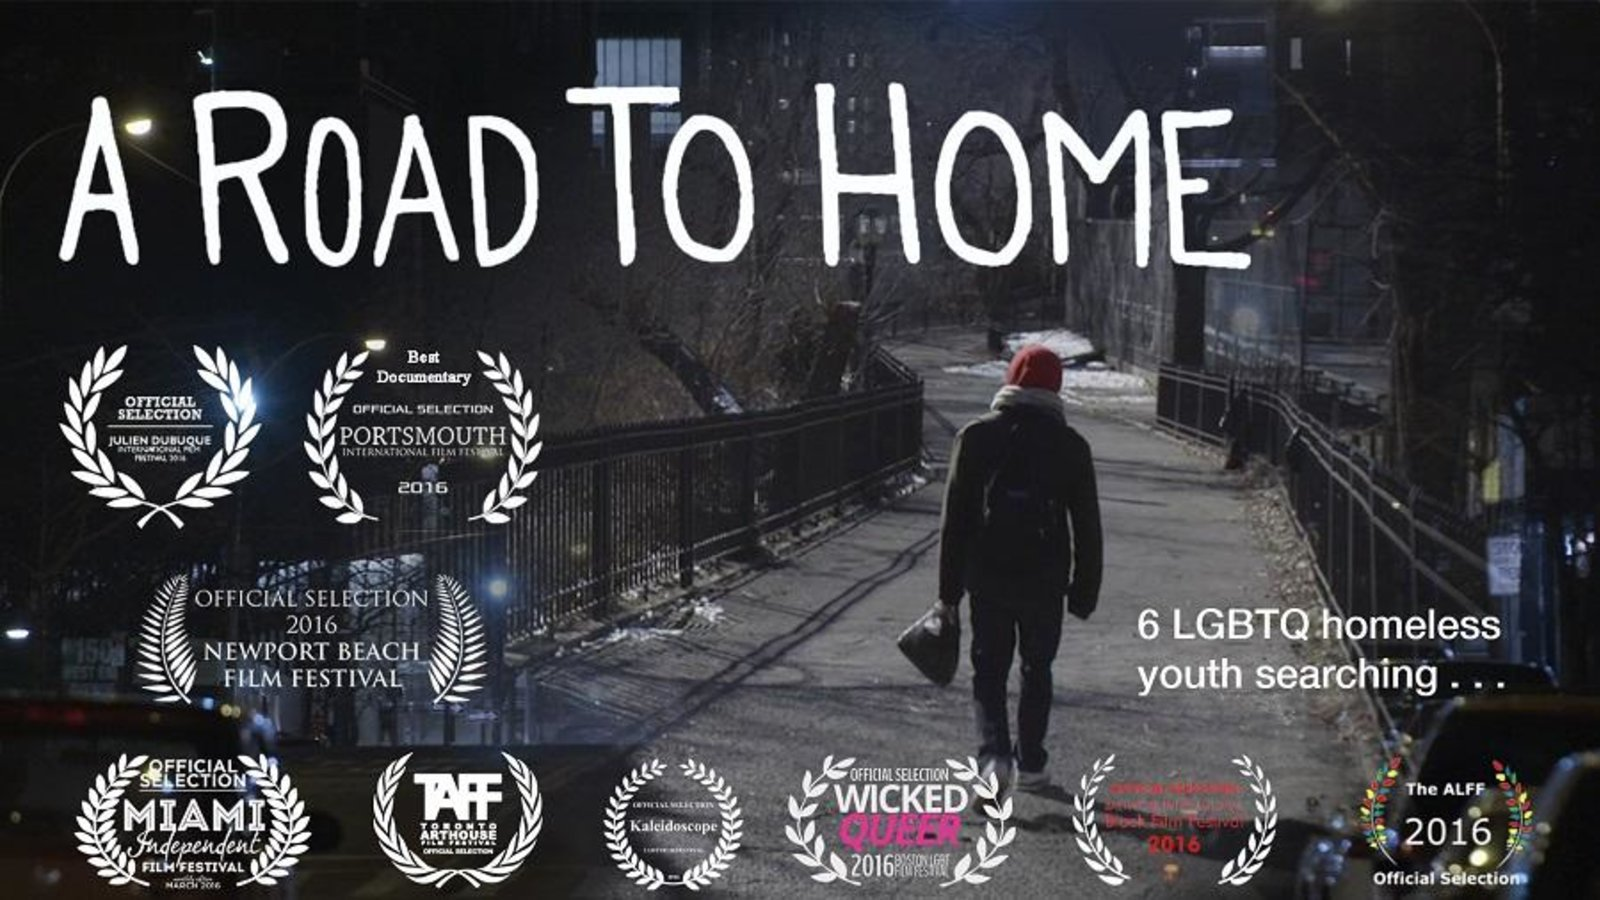 A Road to Home - Stories of Homeless LGBTQ Youth of New York City